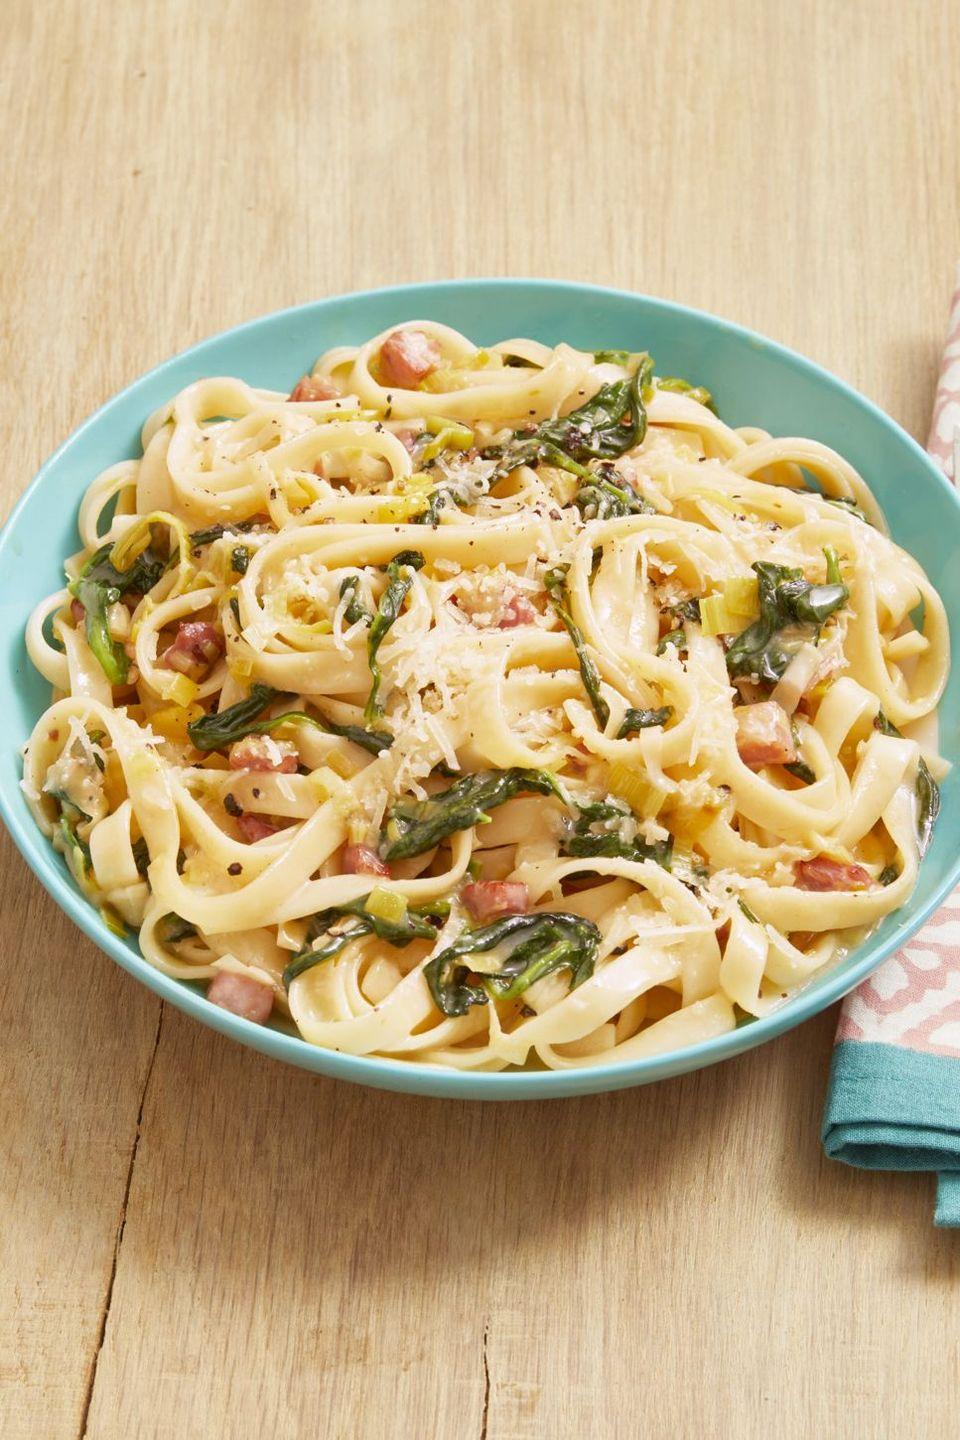 "<p>This pasta has a delicious oniony flavor thanks to the addition of fresh leeks. Oh, and it's ready in just 30 minutes.</p><p><strong><a href=""https://www.thepioneerwoman.com/food-cooking/recipes/a32477234/pasta-with-ham-leeks-and-spinach-recipe/"" rel=""nofollow noopener"" target=""_blank"" data-ylk=""slk:Get the recipe"" class=""link rapid-noclick-resp"">Get the recipe</a>.</strong></p><p><strong><a class=""link rapid-noclick-resp"" href=""https://go.redirectingat.com?id=74968X1596630&url=https%3A%2F%2Fwww.walmart.com%2Fbrowse%2Fhome%2Fthe-pioneer-woman-dishes%2F4044_623679_639999_7373615&sref=https%3A%2F%2Fwww.thepioneerwoman.com%2Ffood-cooking%2Fmeals-menus%2Fg35589850%2Fmothers-day-dinner-ideas%2F"" rel=""nofollow noopener"" target=""_blank"" data-ylk=""slk:SHOP BOWLS"">SHOP BOWLS</a><br></strong></p>"